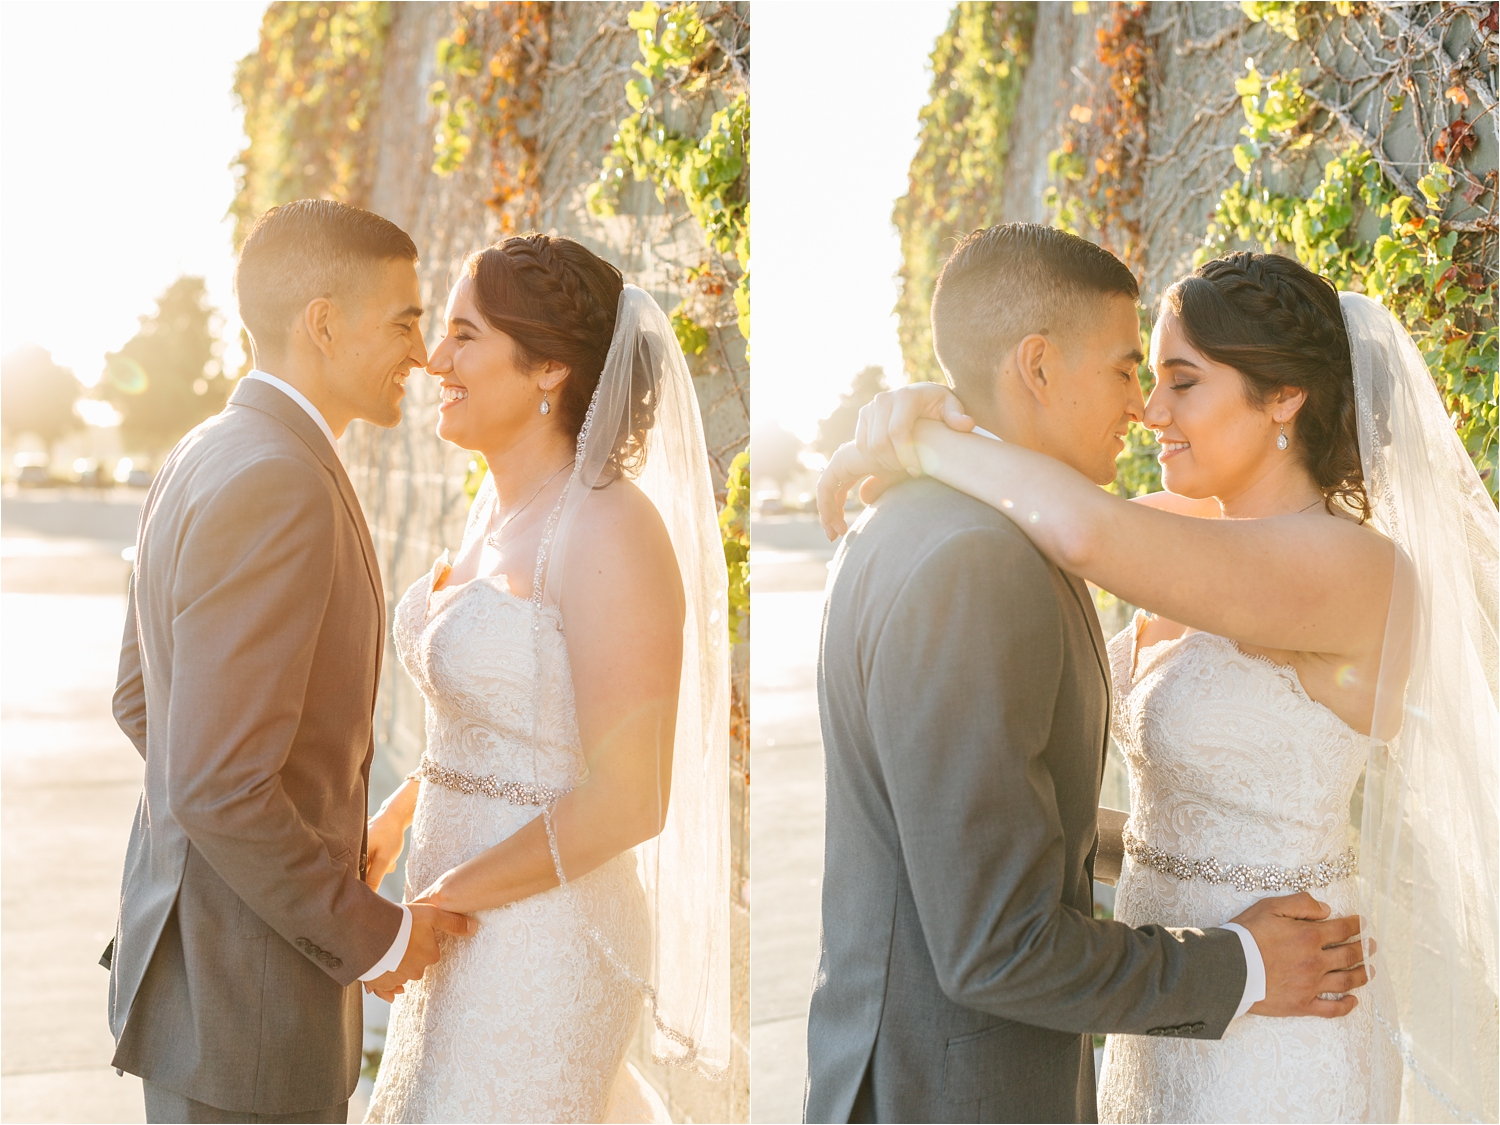 Sweet and Romantic Bride and Groom Photos - Beautiful Wedding Photography - https://brittneyhannonphotography.com